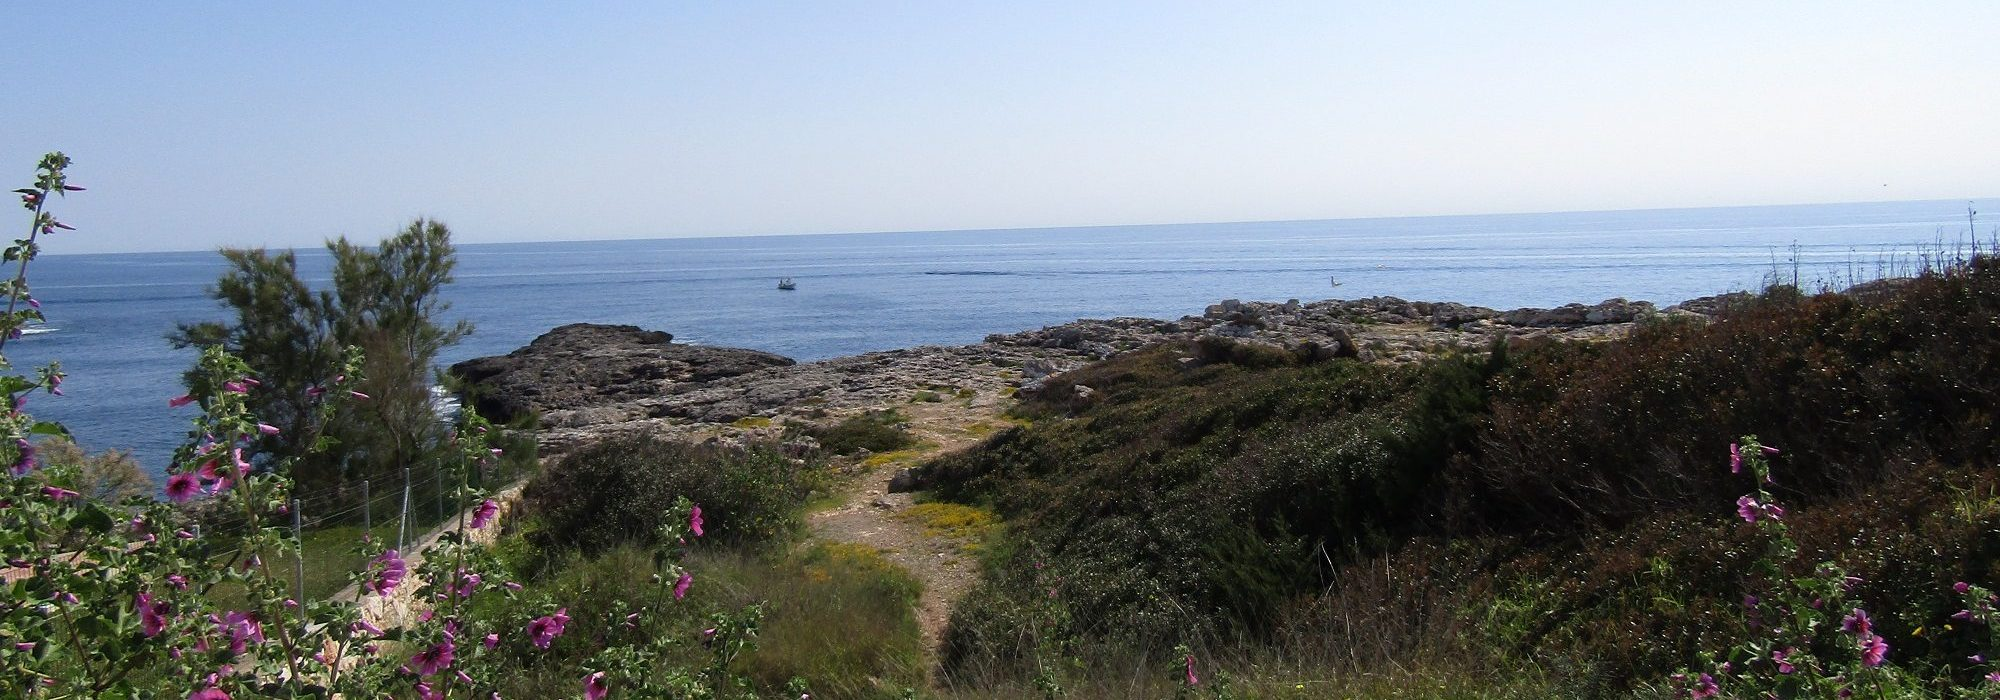 Exclusive Land with Open Sea Views in Cala d'Or, Mallorca